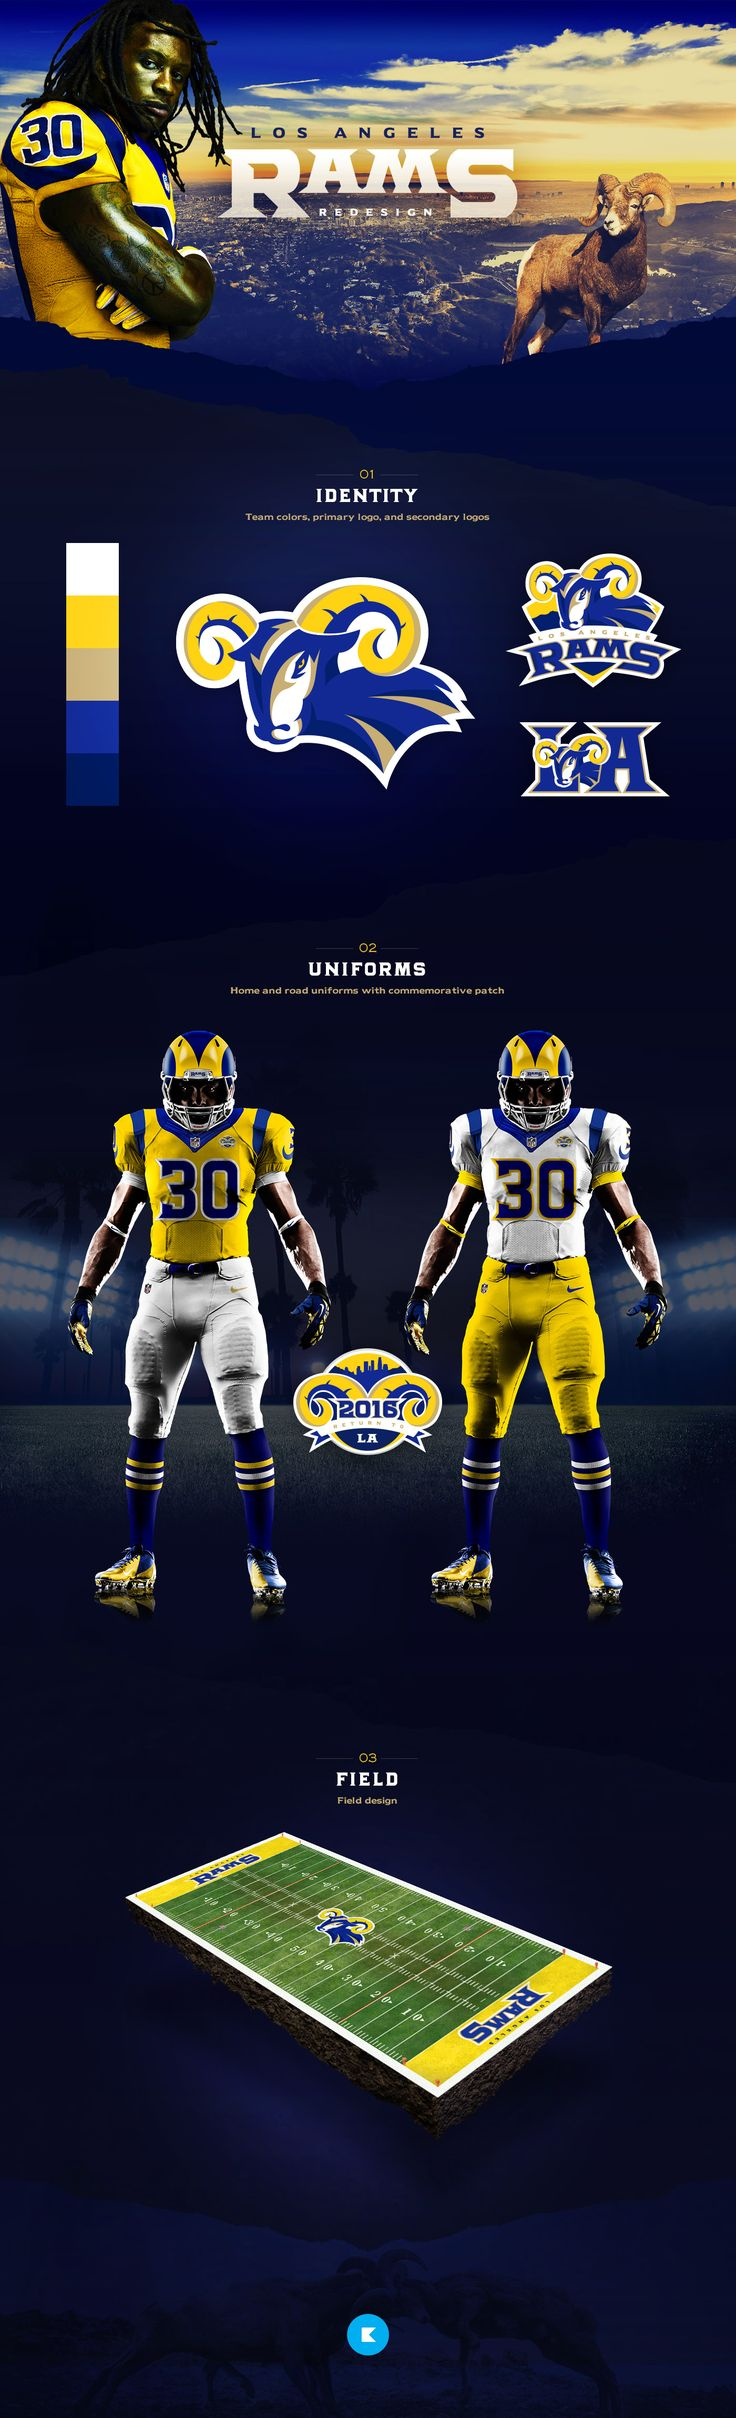 Los Angeles Rams on Behance